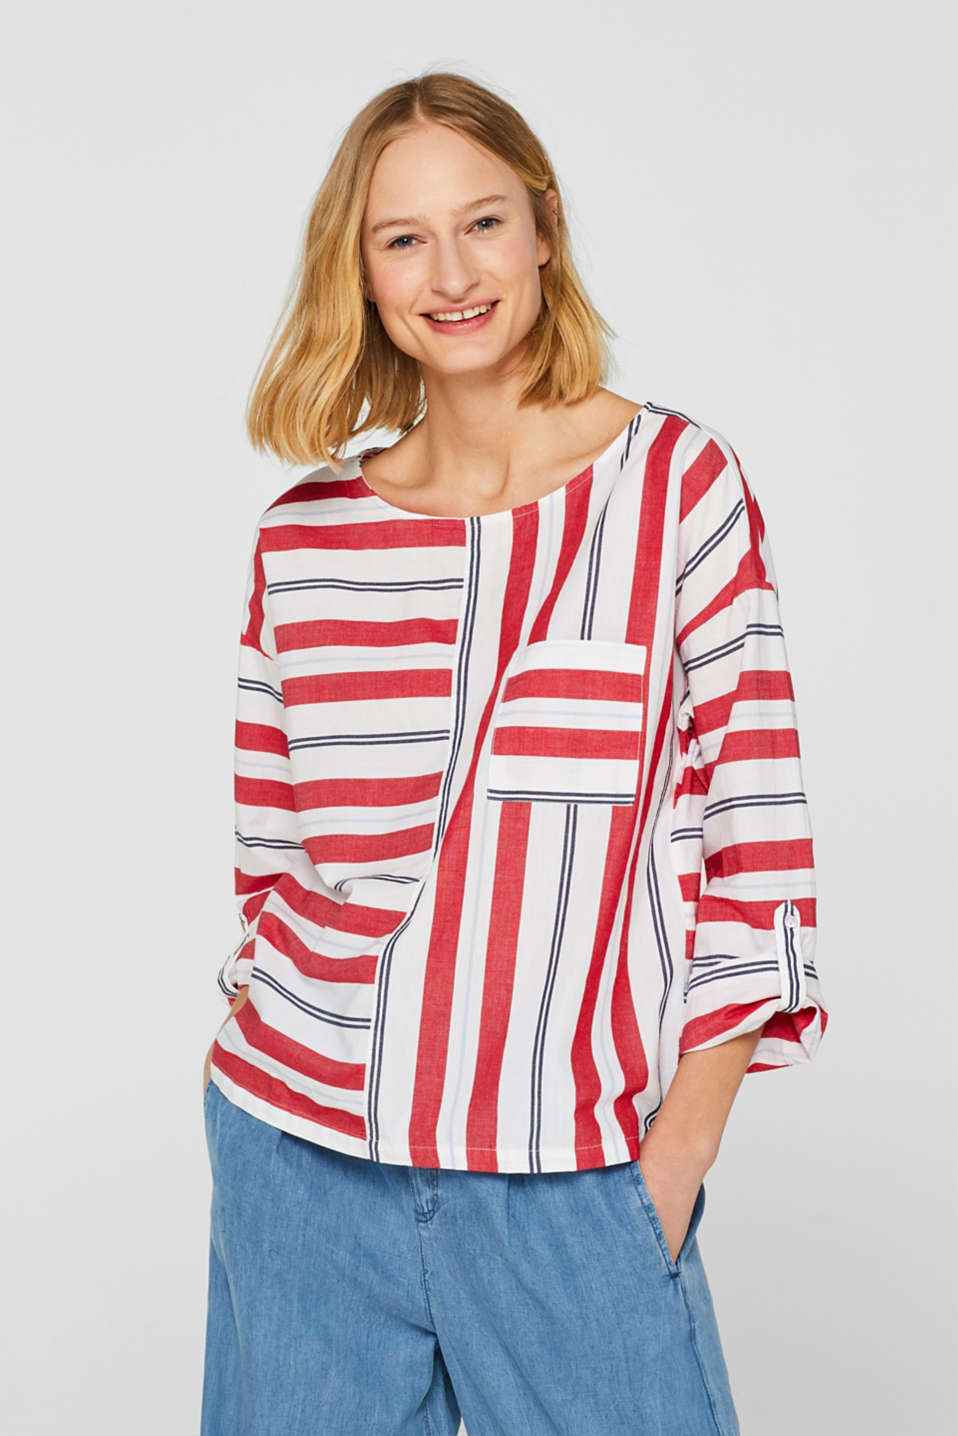 Esprit - Gestreifte Turn-up-Bluse, 100% Baumwolle